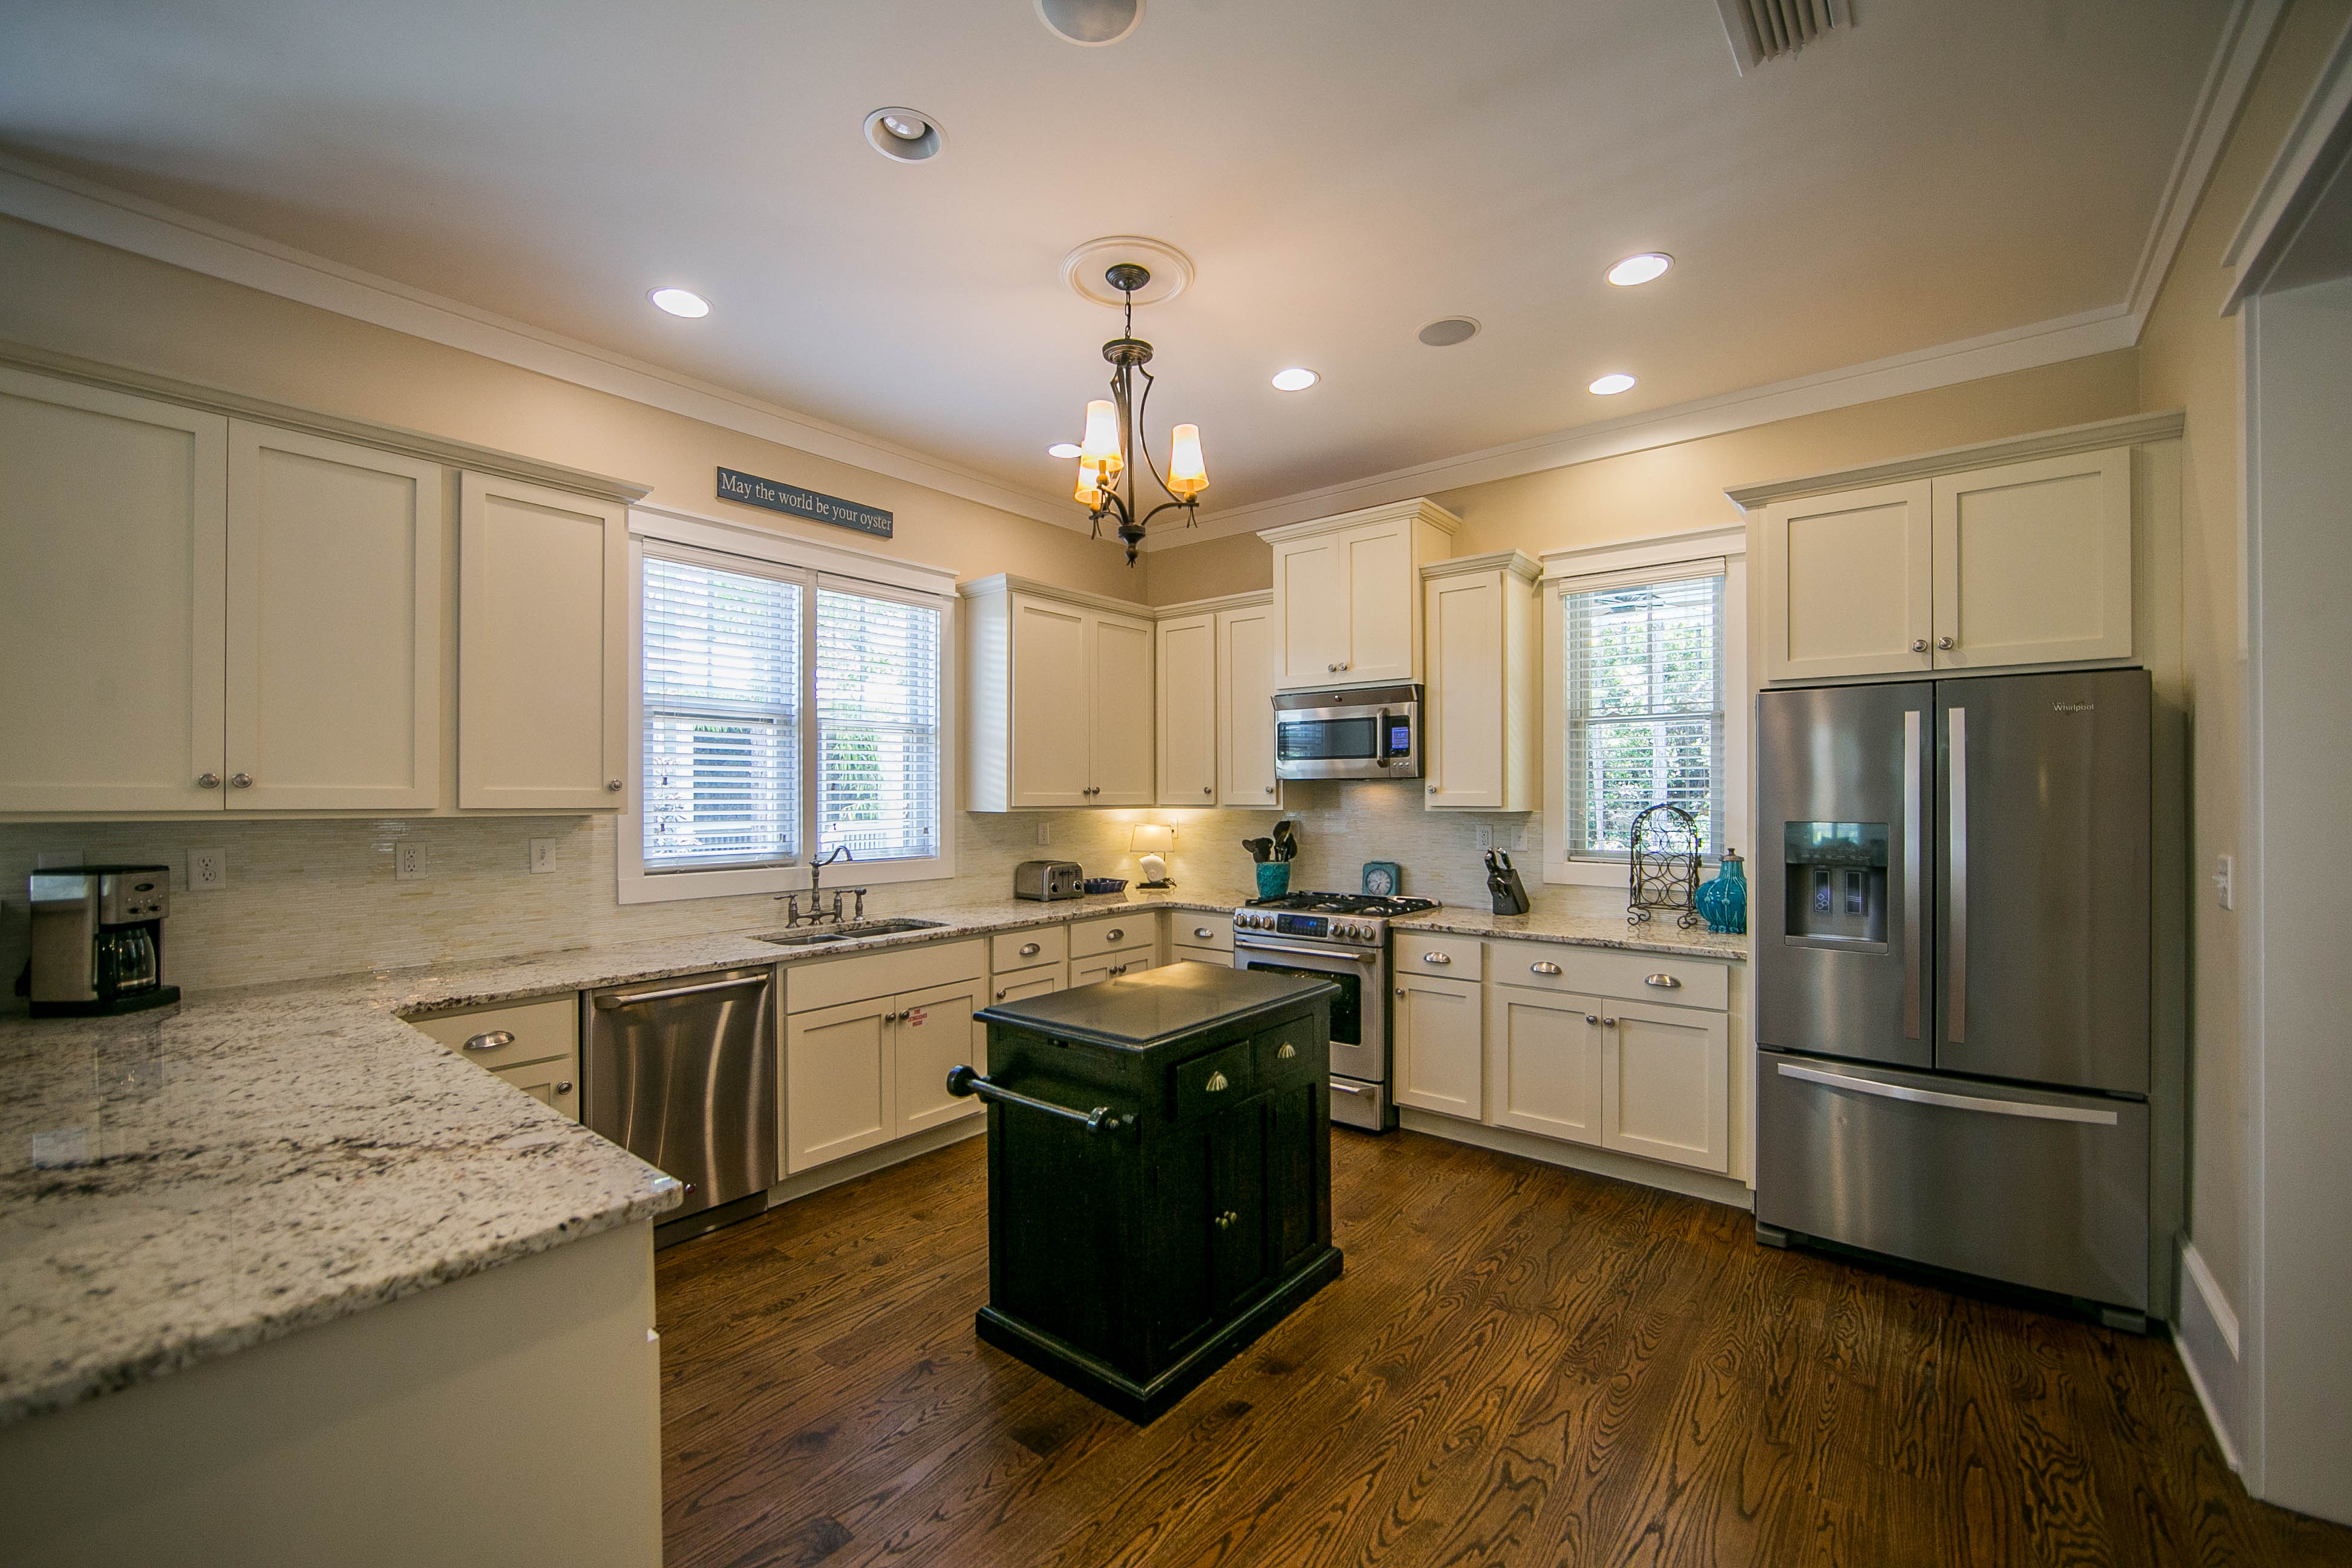 Easy flow for lots of cooking - stainless steel appliances